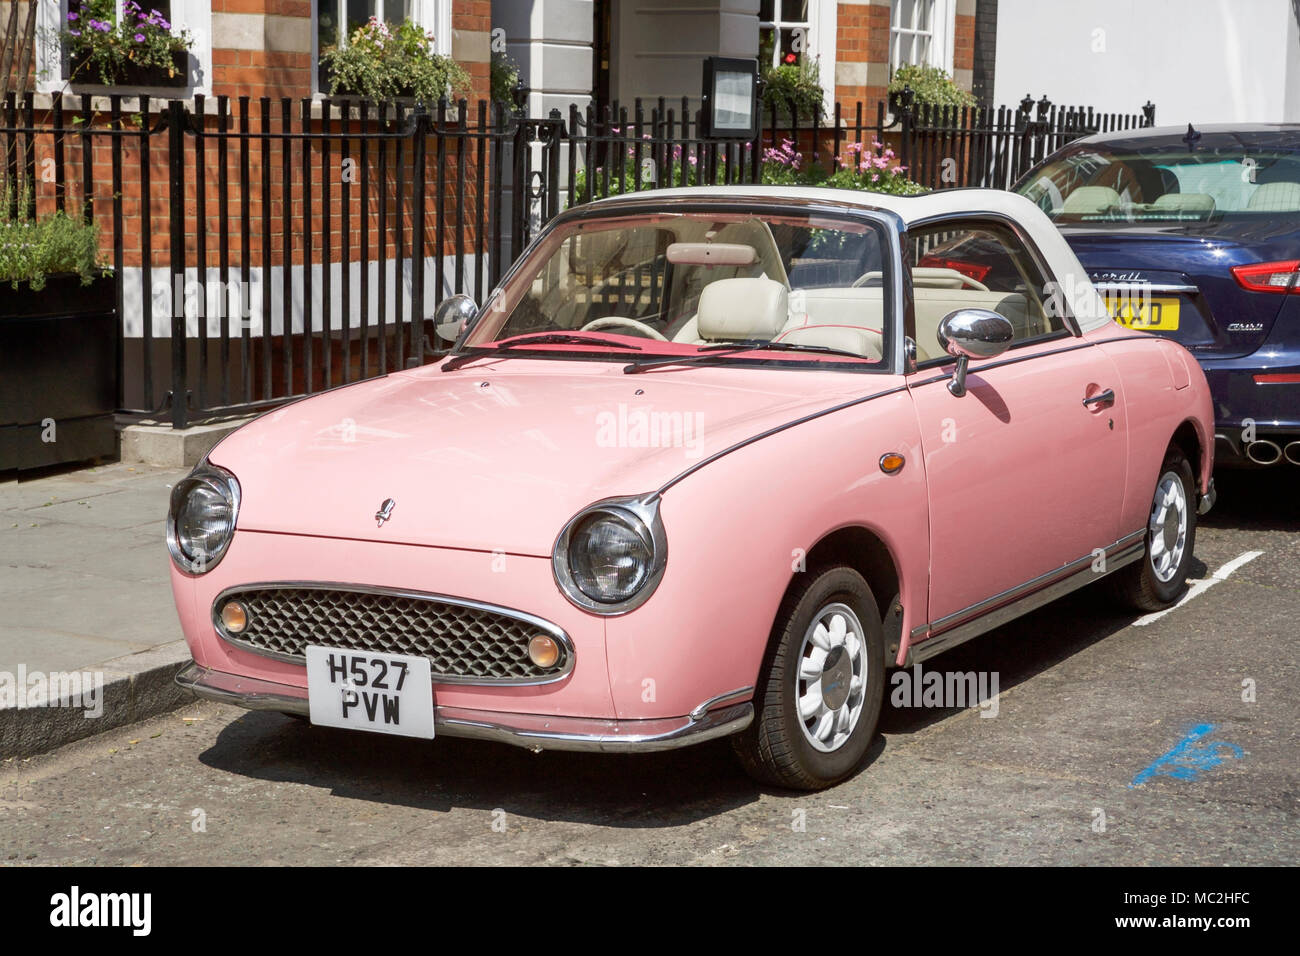 A pink Nissan Figaro car. Stock Photo